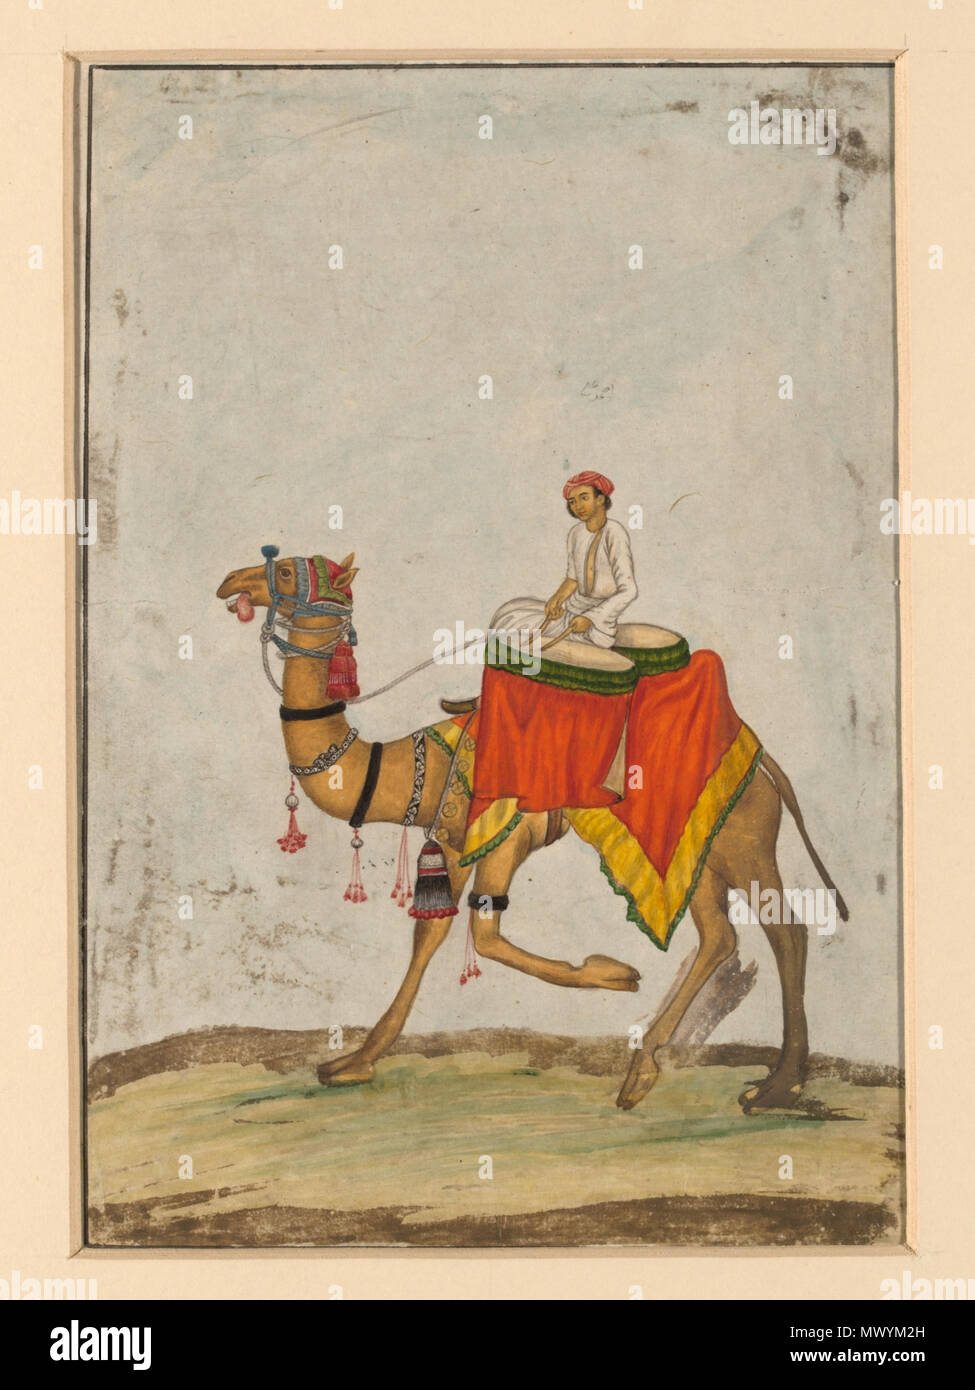 .  English: One of six figures from the Mughal emperor's ceremonial procession on the occasion of the Id. . circa 1840(painted). Khan, Mazhar Ali (possibly, Artist) 19 A camel with its rider playing kettle drums. Stock Photo